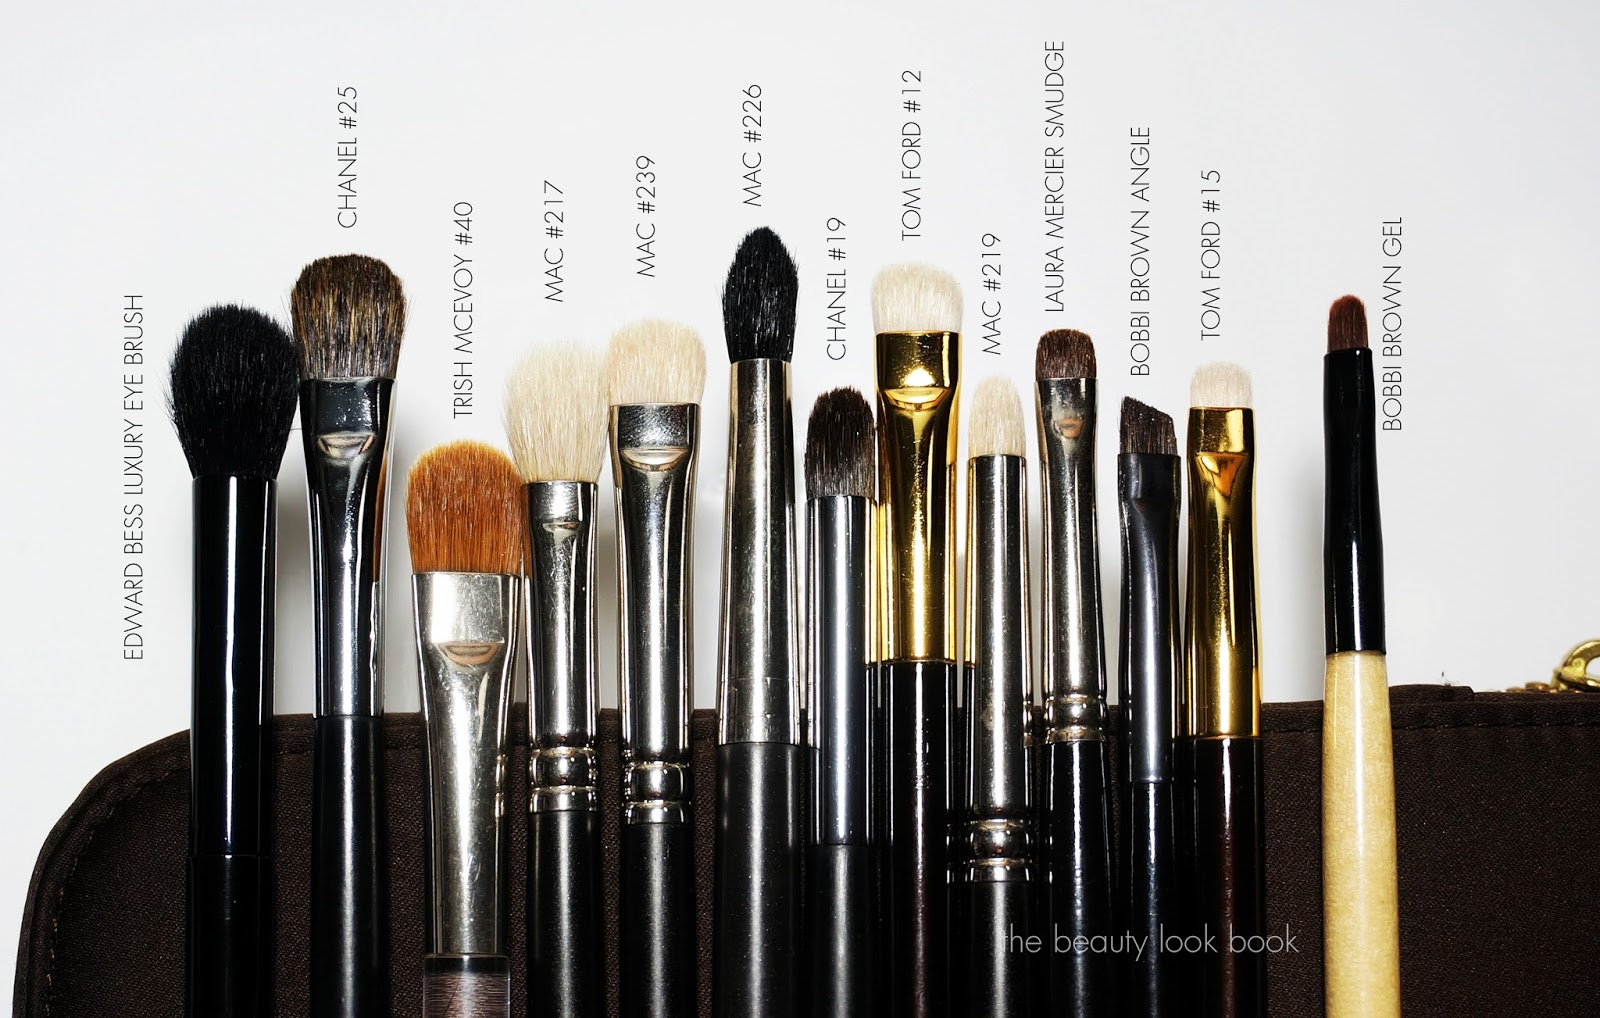 The Beauty Look Book Eye Brushes